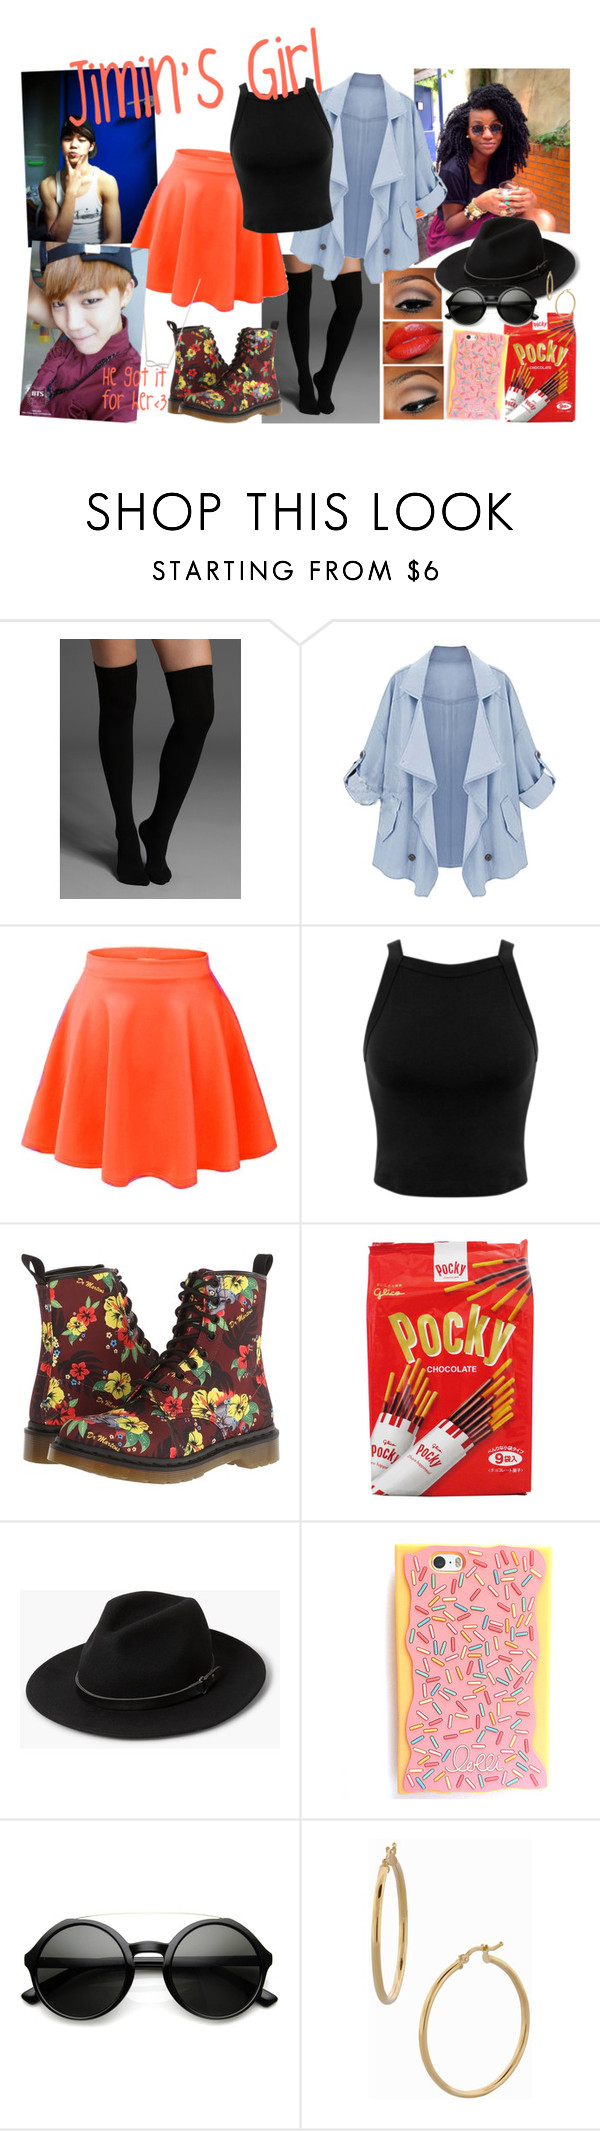 """The Mrs.:Jimin's Girl"" by hallaib4zari ❤ liked on Polyvore featuring Plush, Miss Selfridge, Dr. Martens, MANGO, Bony Levy, kpop, bts, BangtanBoys and jimin"